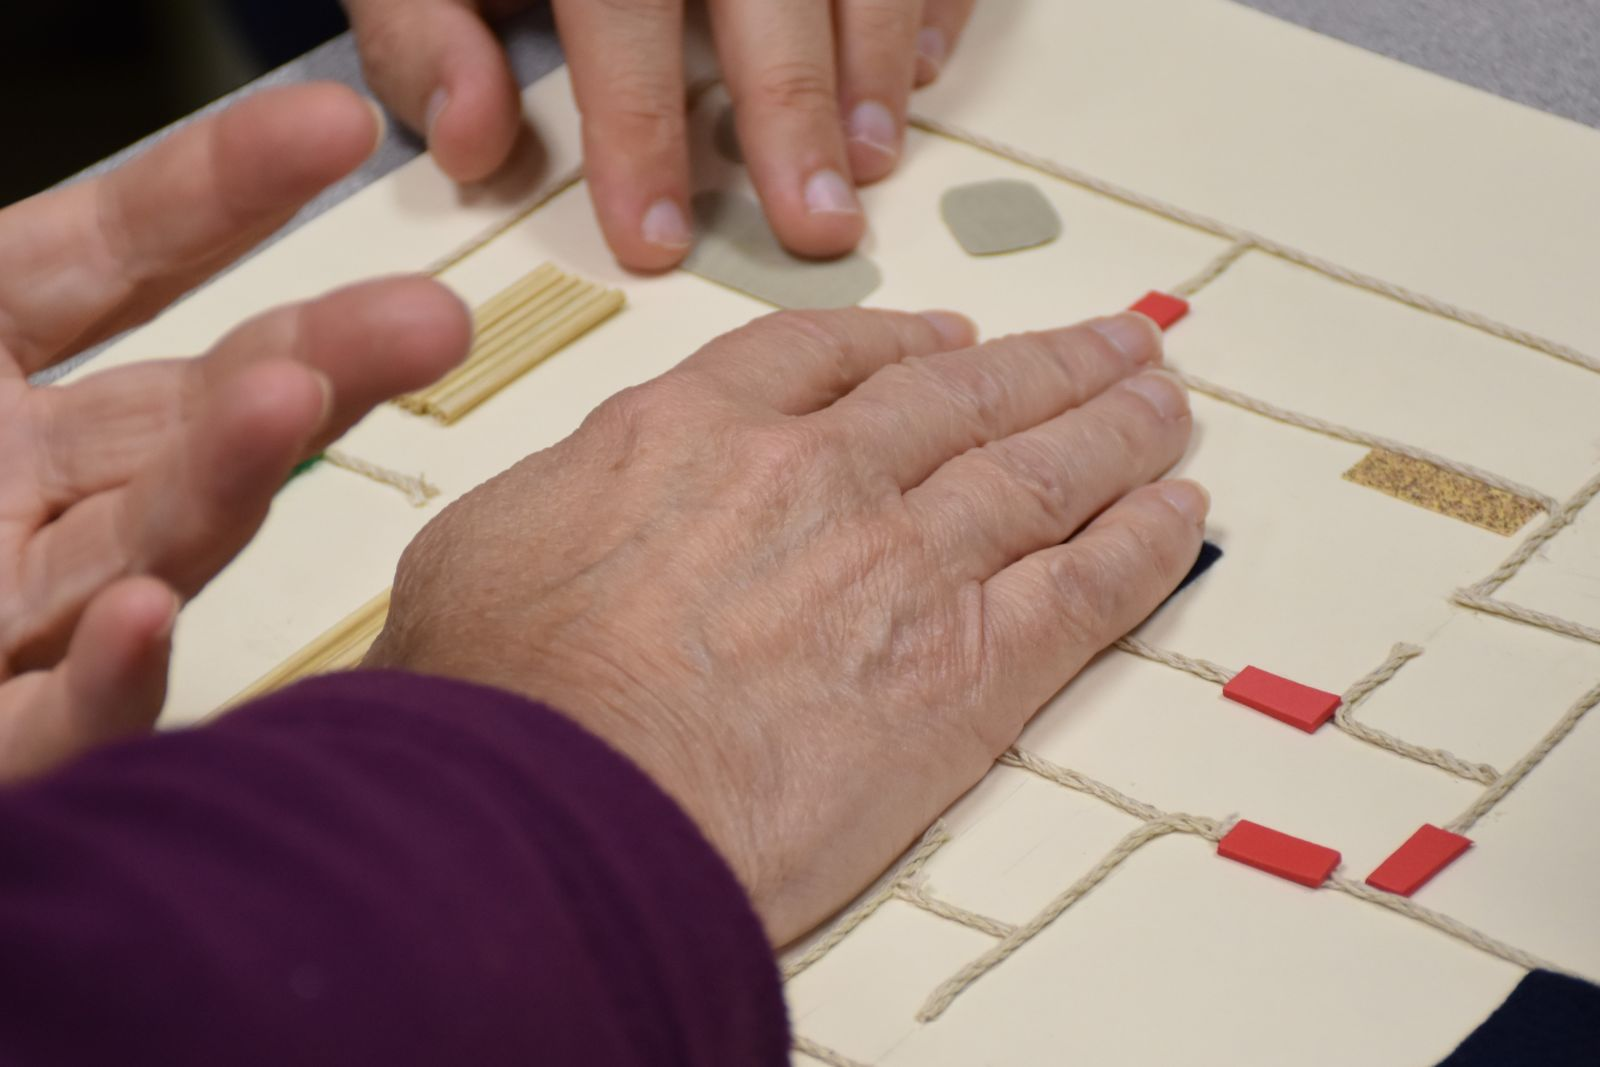 Hands examining a tactile graphic